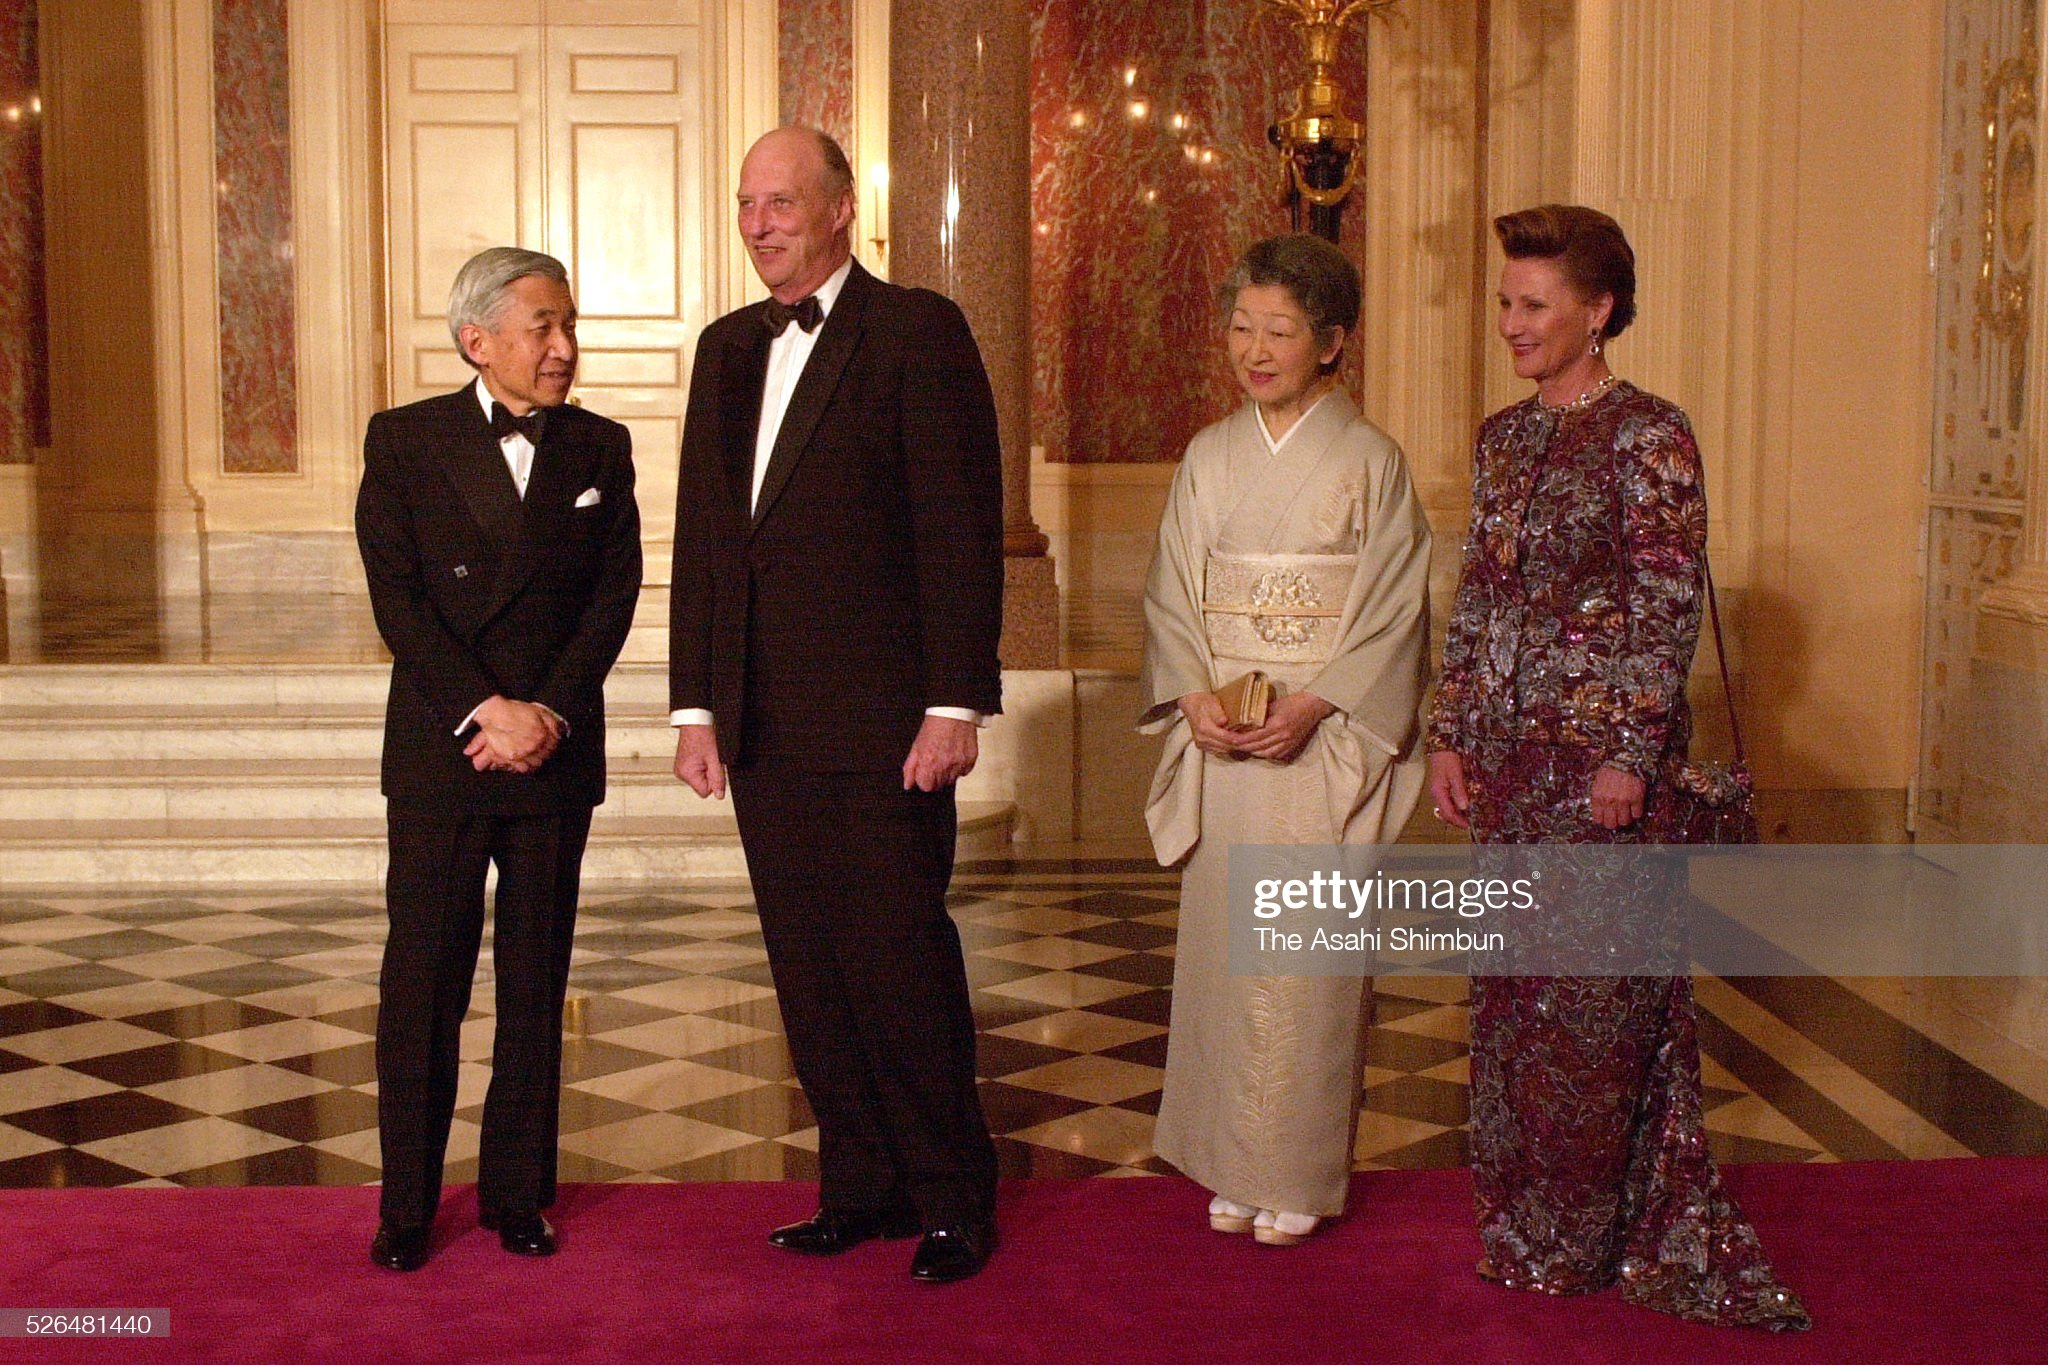 King Harald V of Norway Visits Japan : News Photo